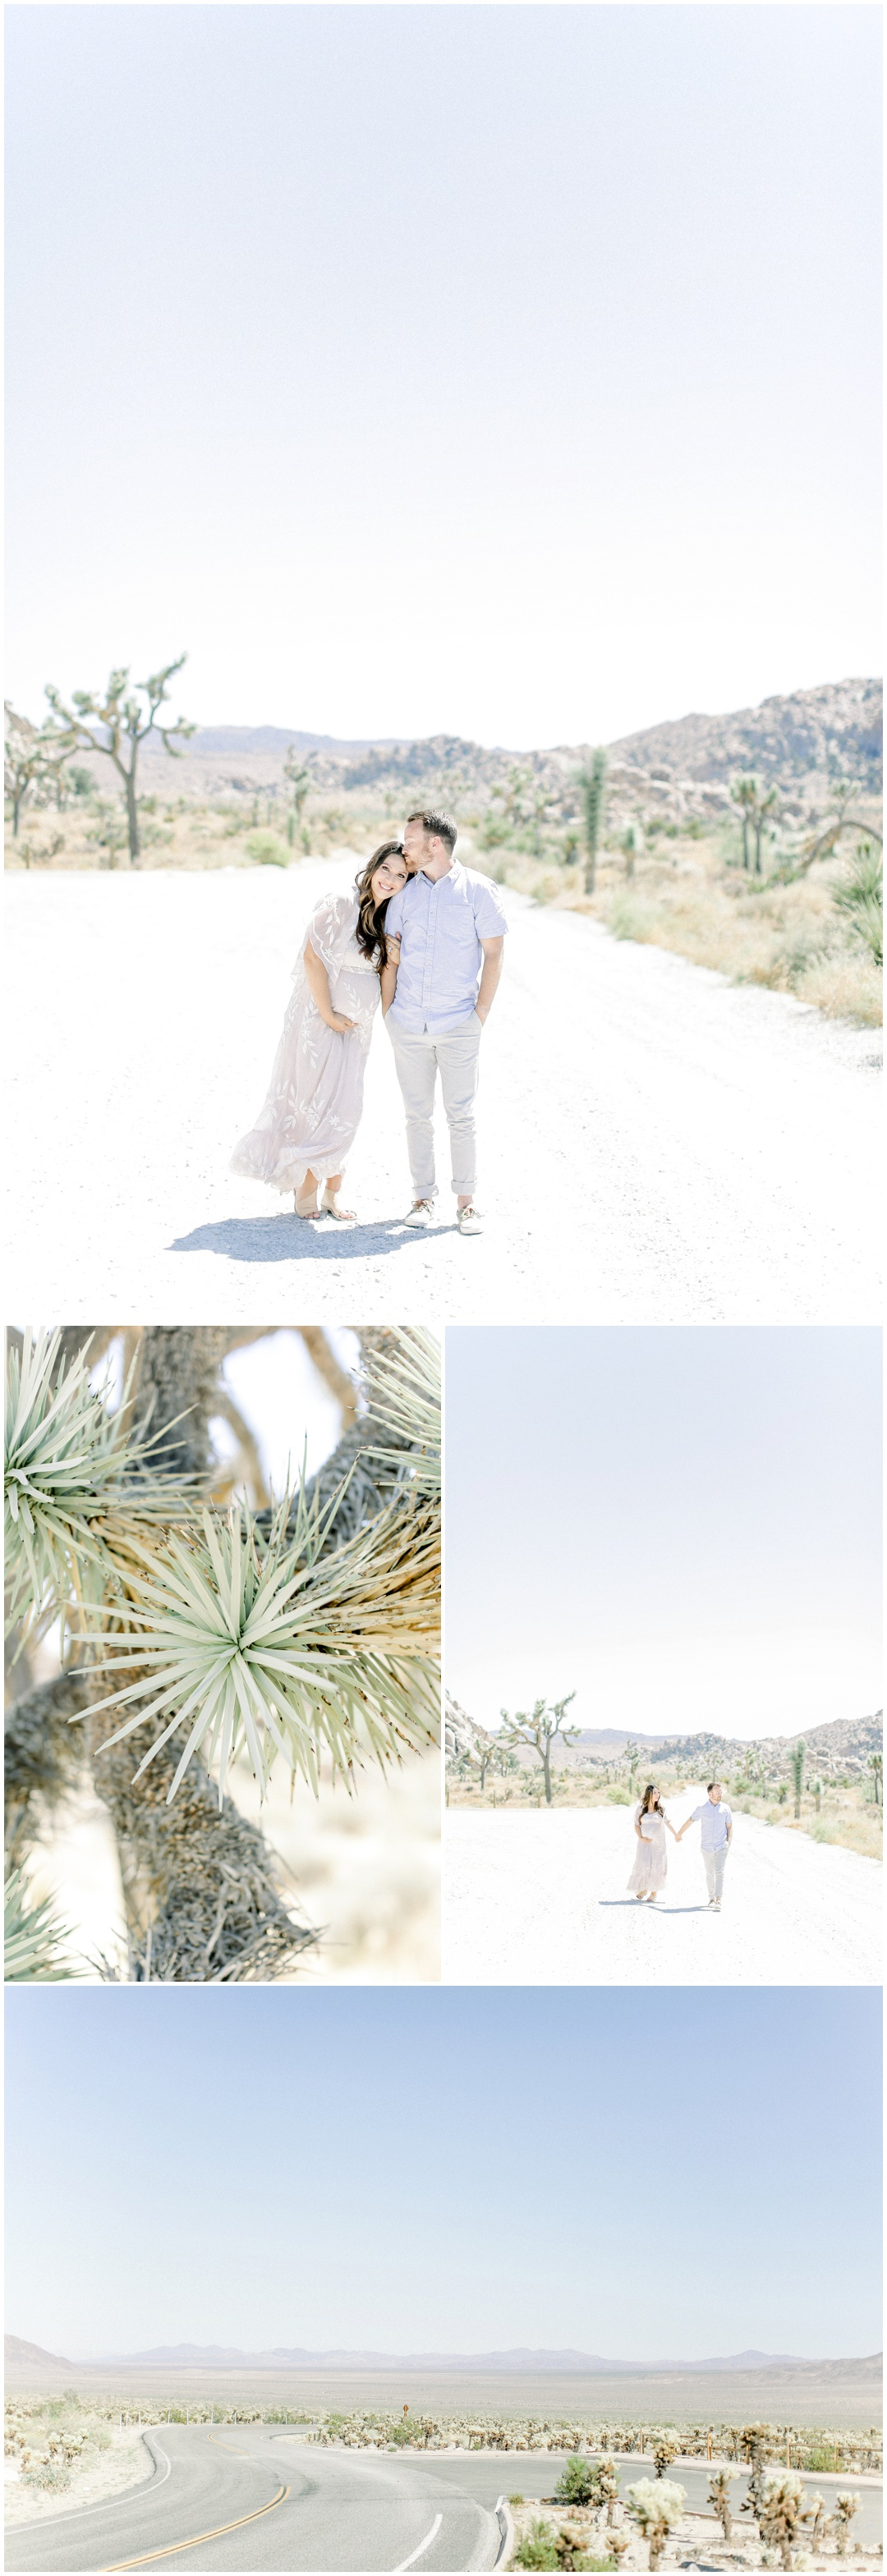 Newport_Beach_Joshua_Tree_Maternity_Photos_Session_Leliani_Hailey_Shane_Hailey_Maternity_Session__4262.jpg